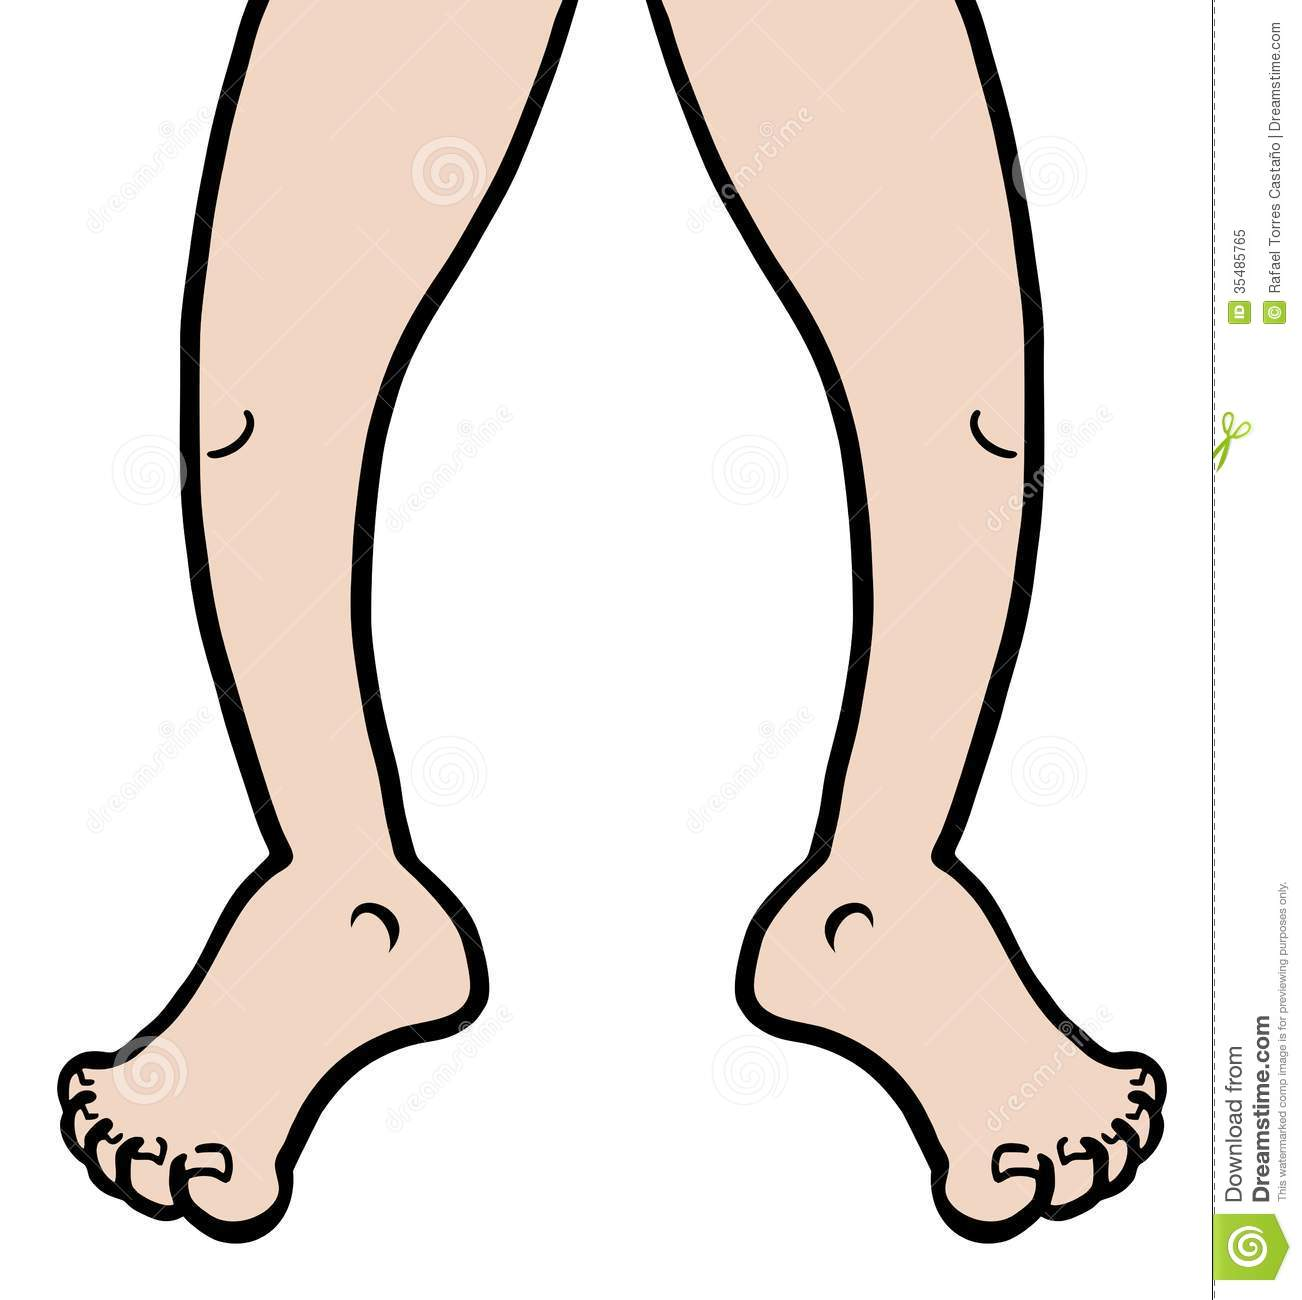 Legs and feet clipart girl.